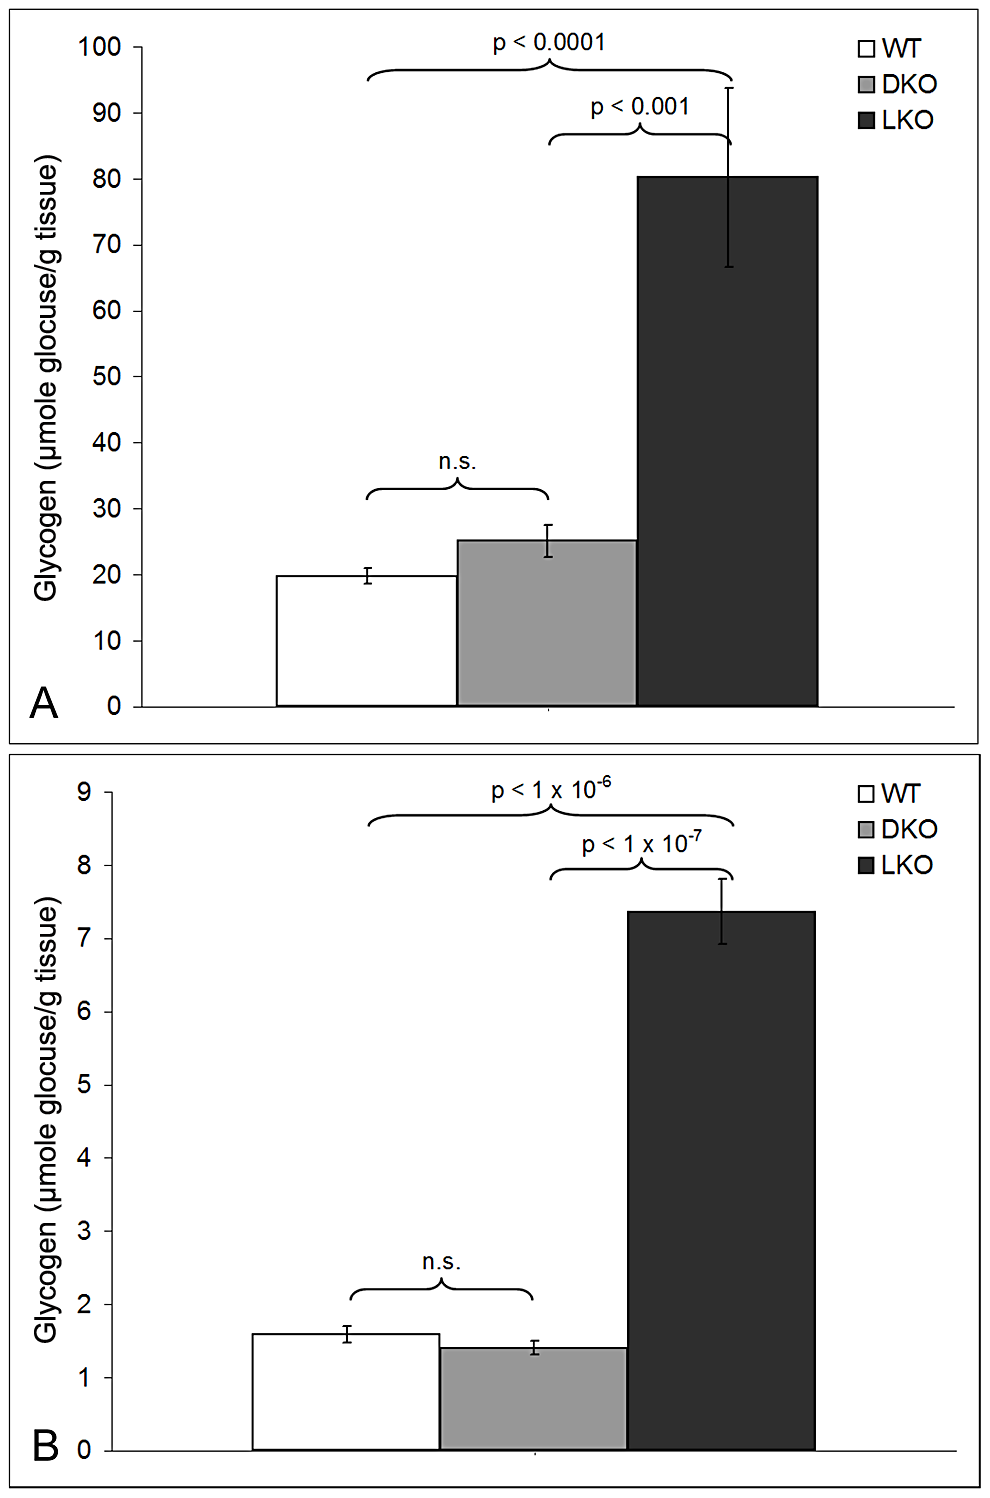 Glycogen levels in skeletal muscle and brain in 12-month-old wt, LKO, and DKO mice (µmol glucose/gm tissue).